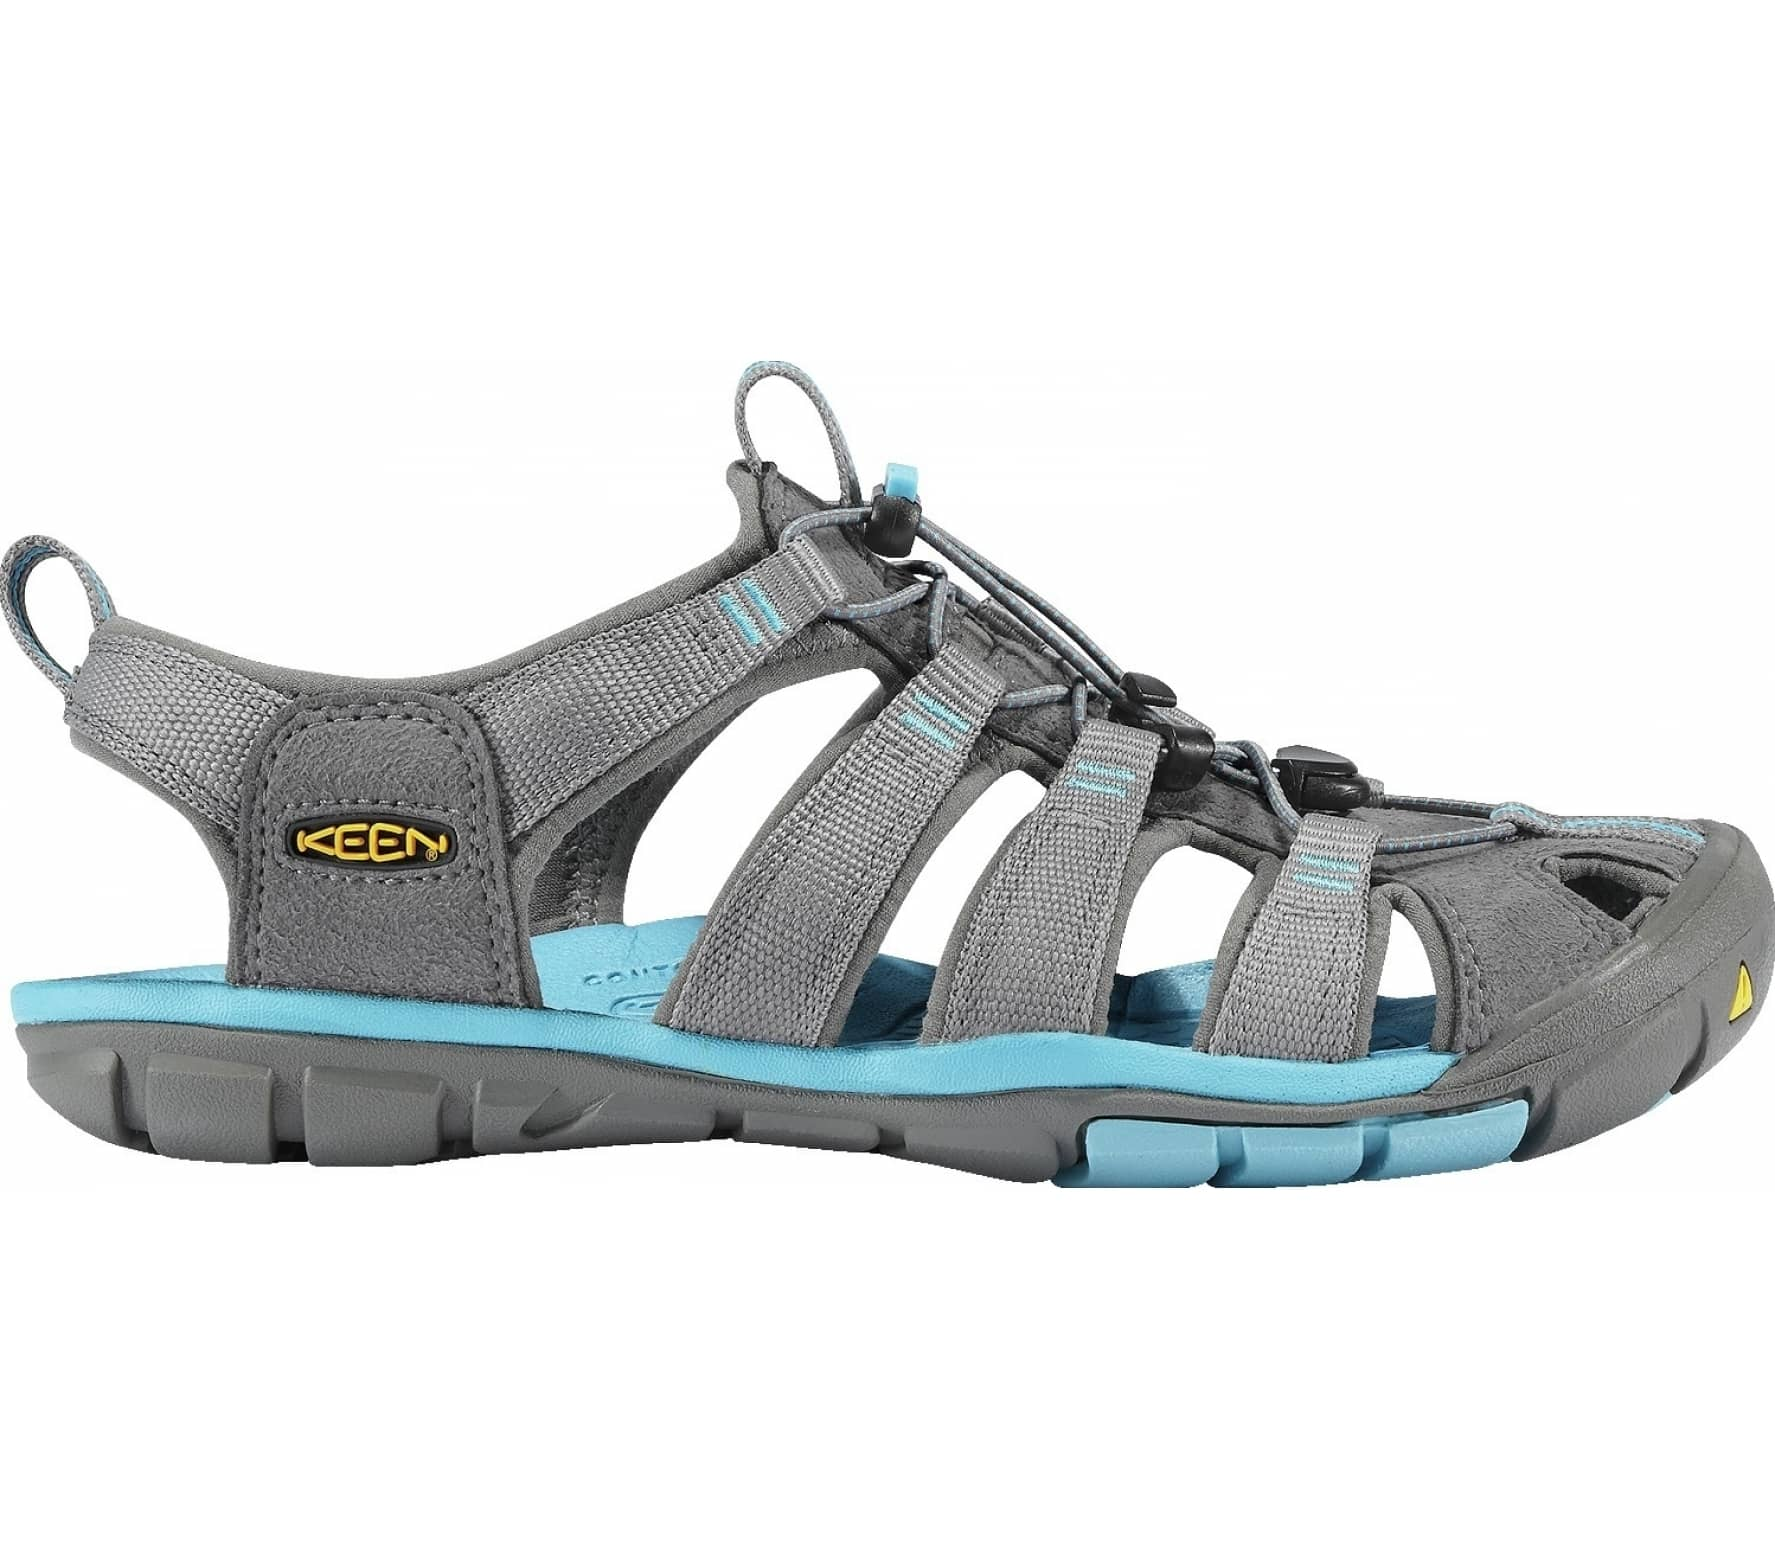 e02debc28899 Keen - Clearwater CNX women s outdoor sandals (grey) - buy it at the ...